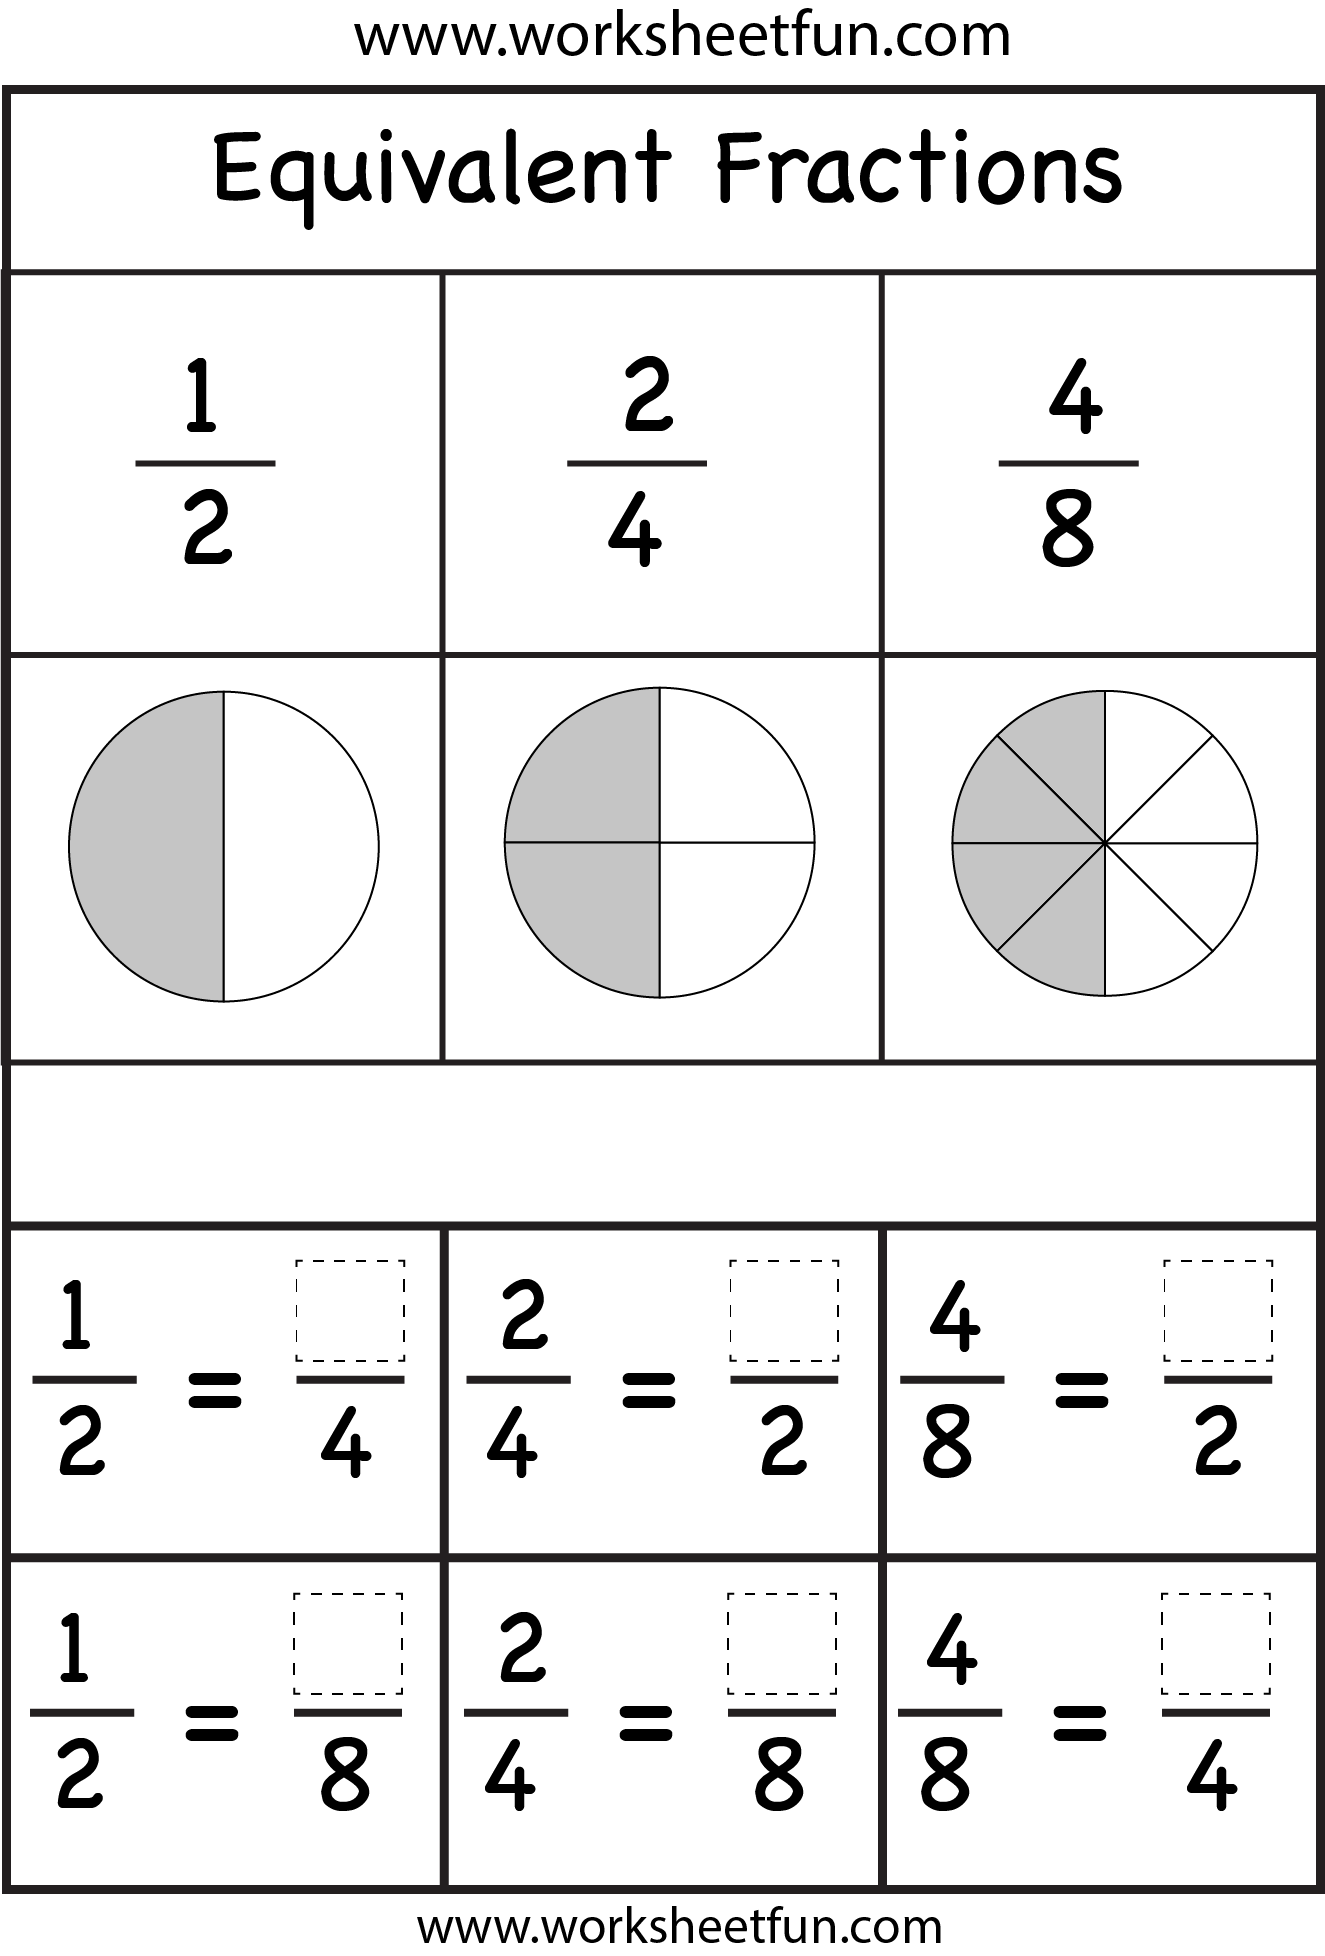 Equivalent Fractions 2 Worksheets HomeschoolMath – Equivalent Fractions Worksheets Free